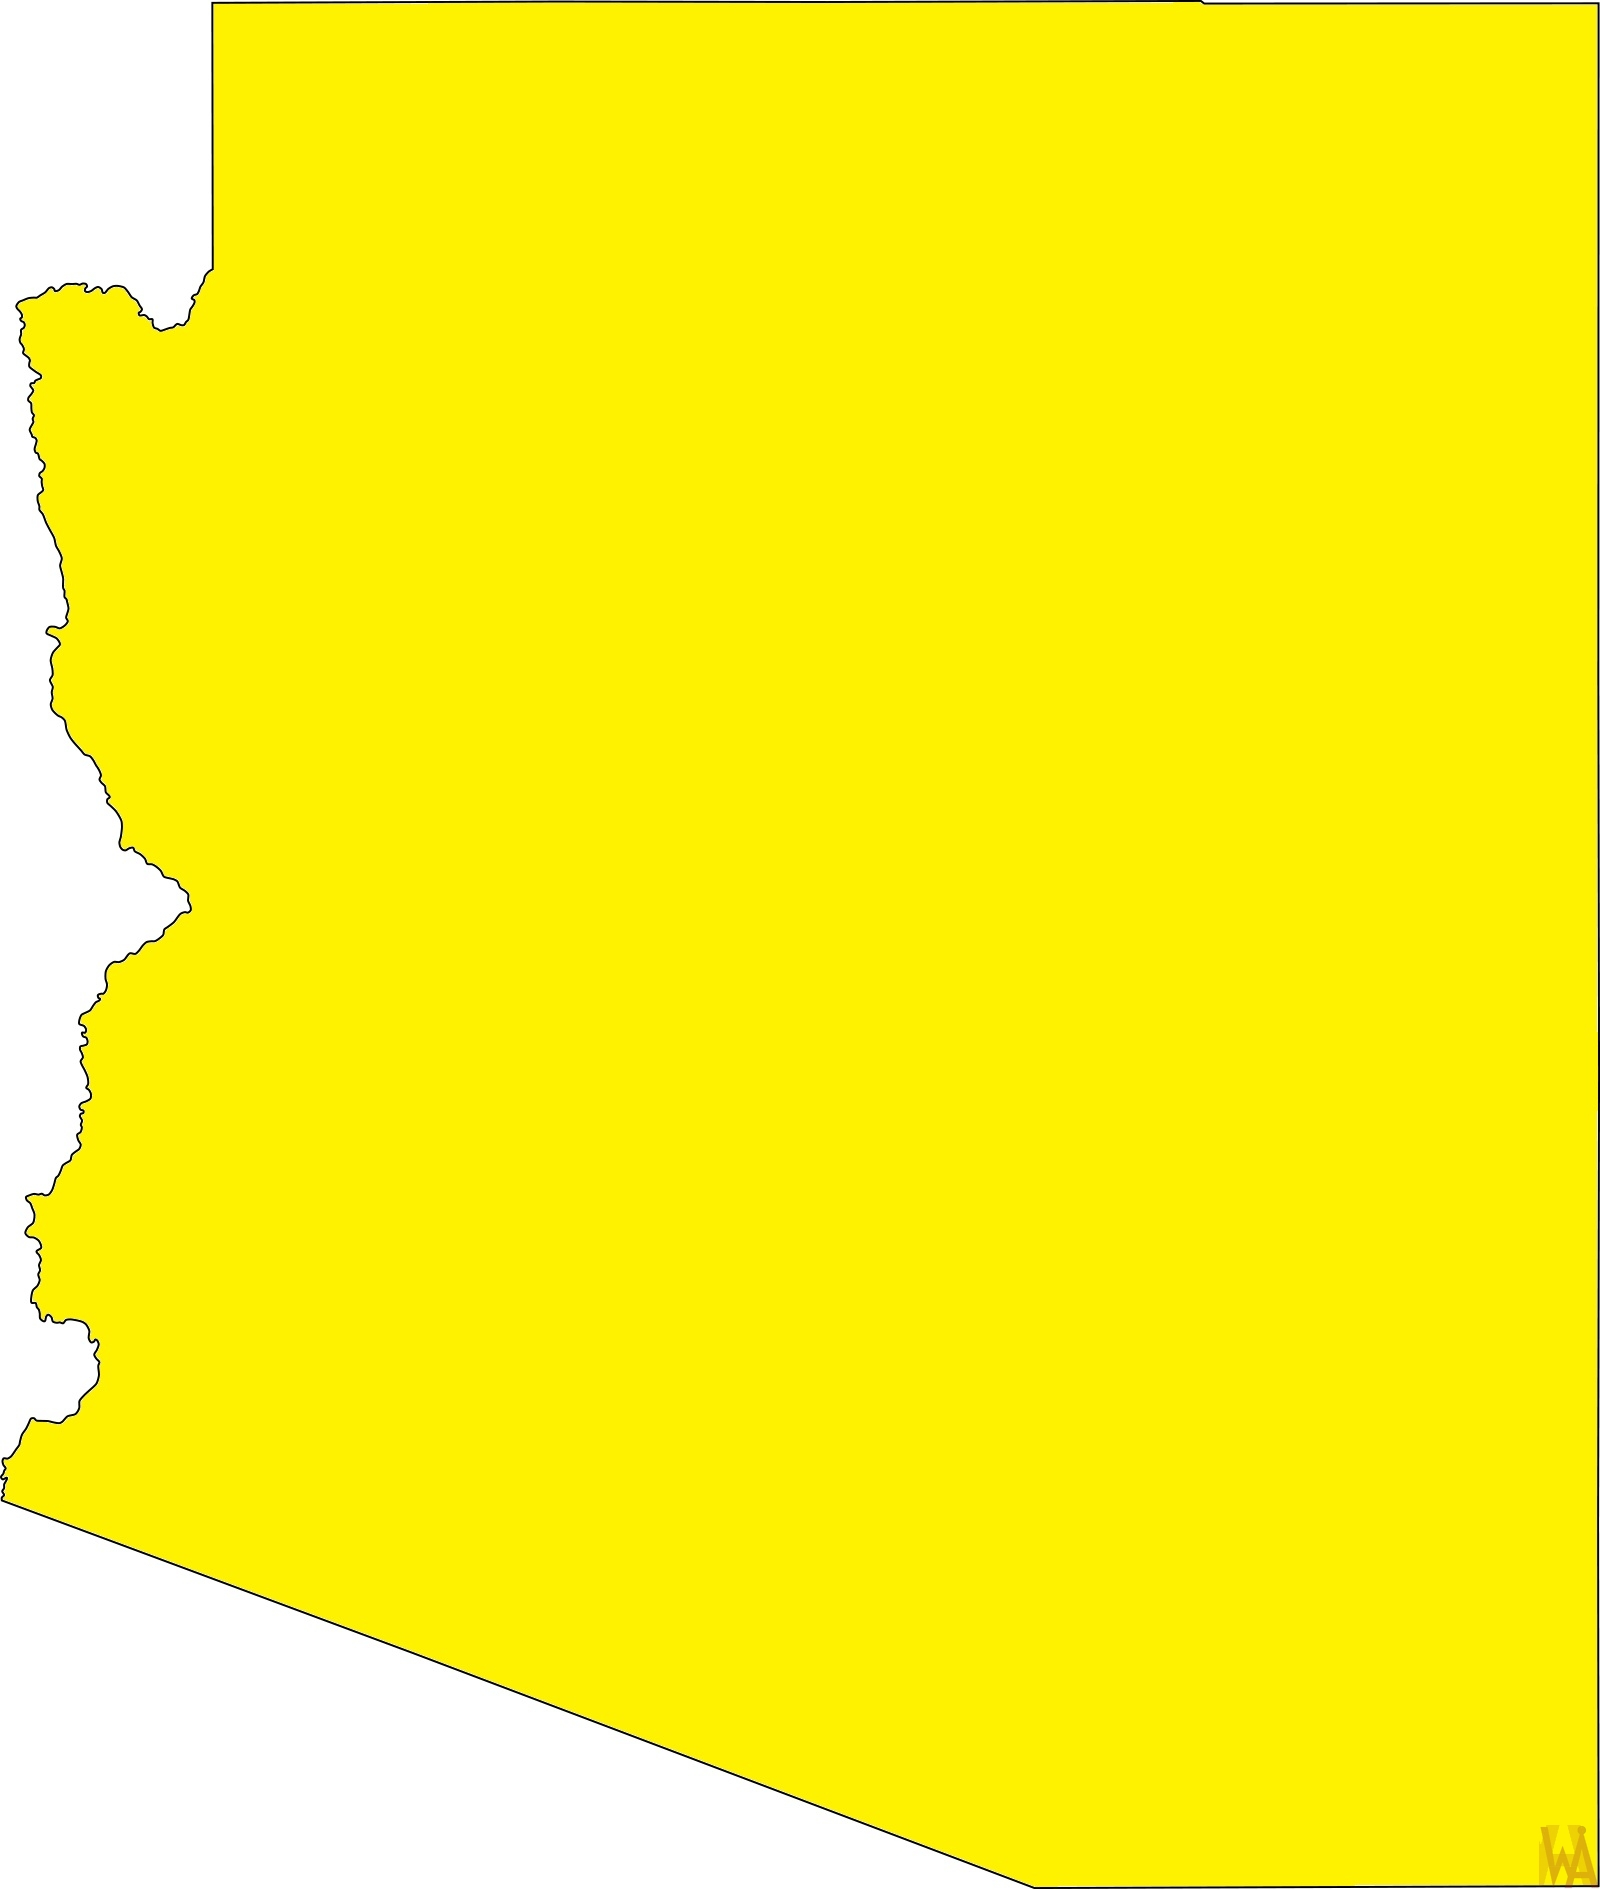 Arizona Blank Outline Map | Blank Outline Map of Arizona